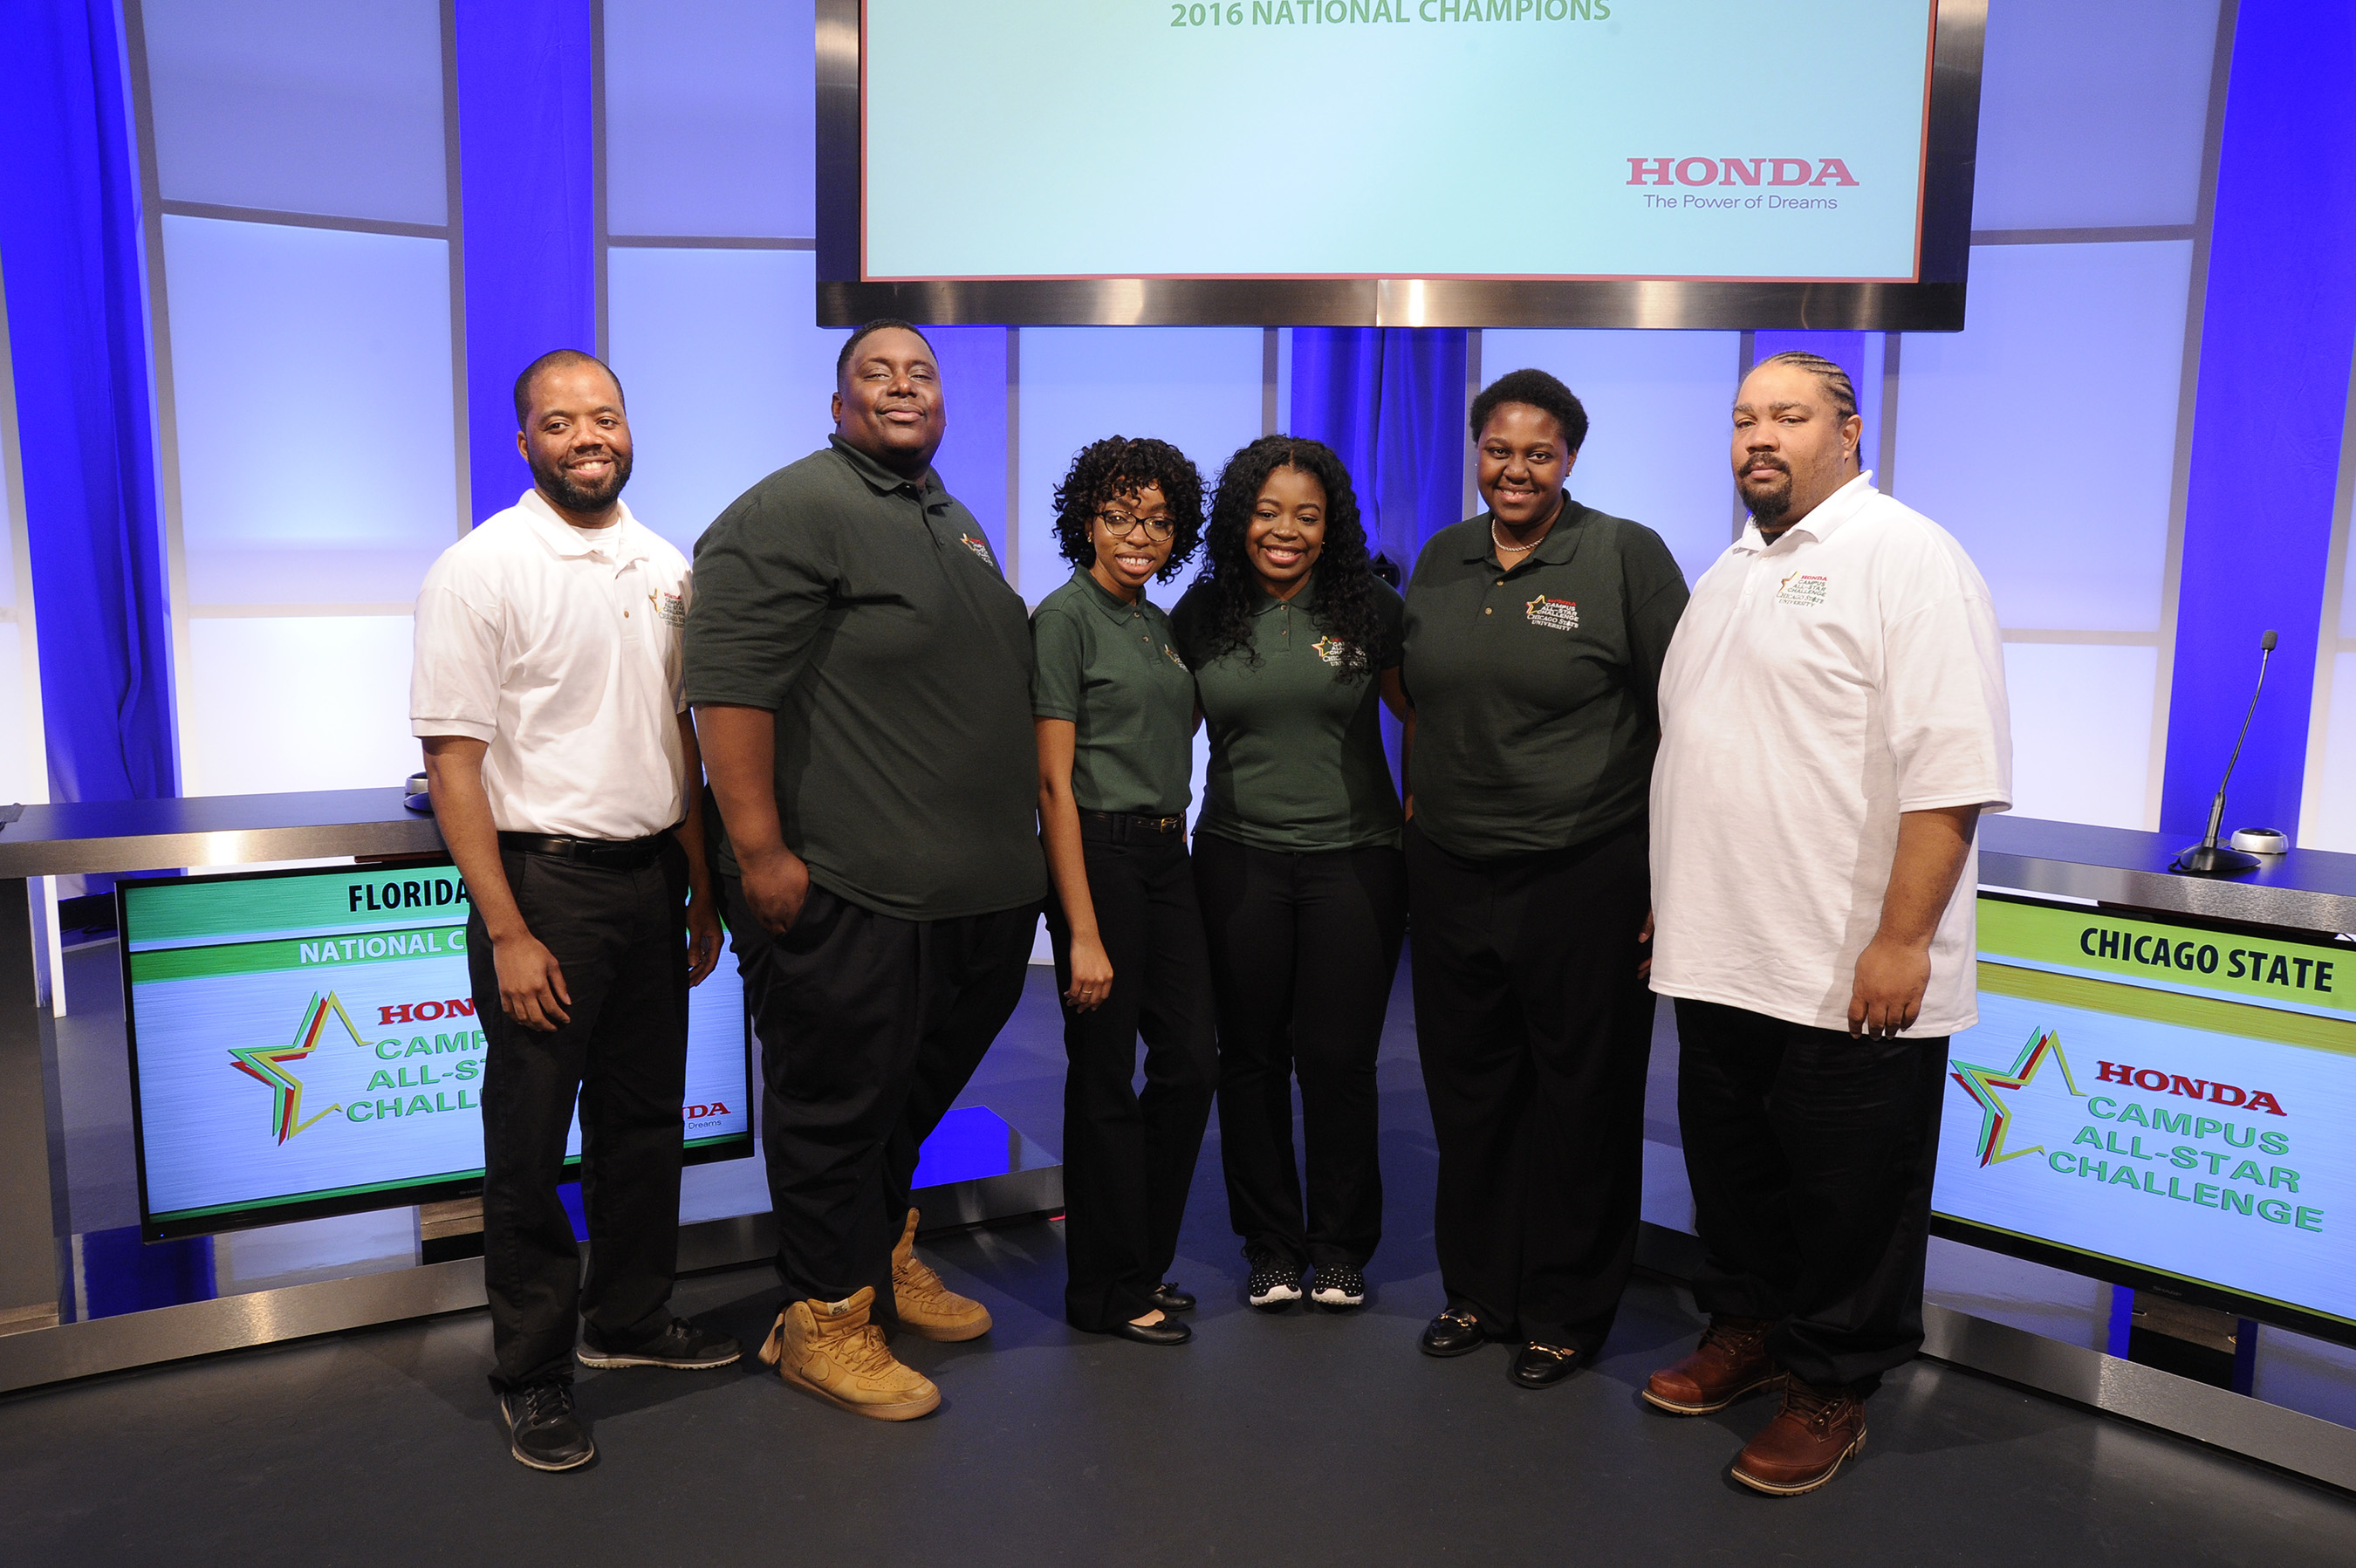 The team from Chicago State University, this year's runner-up in the 27th Honda Campus All-Star Challenge National Championship.